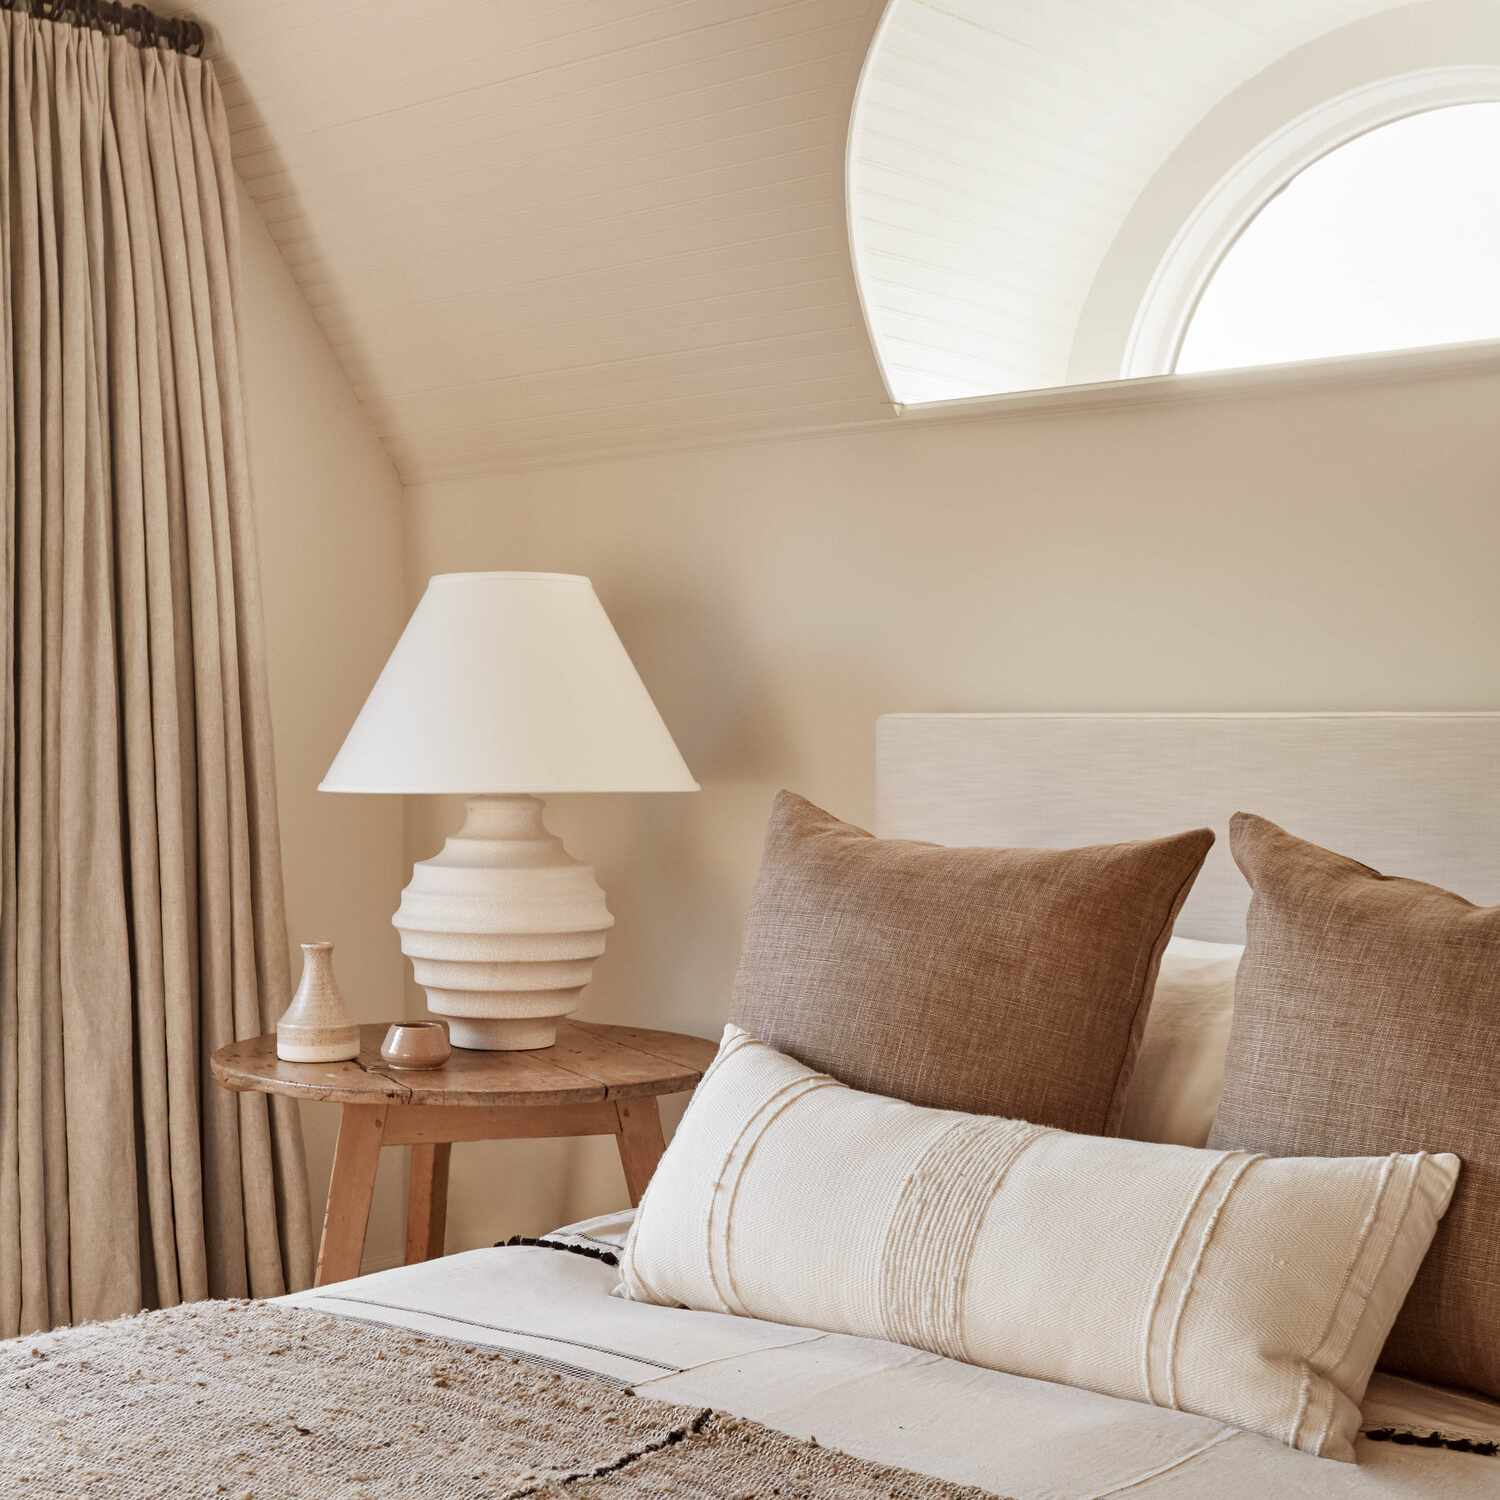 A bedroom decorated with a monochromatic almond palette that extends from ceiling to floor